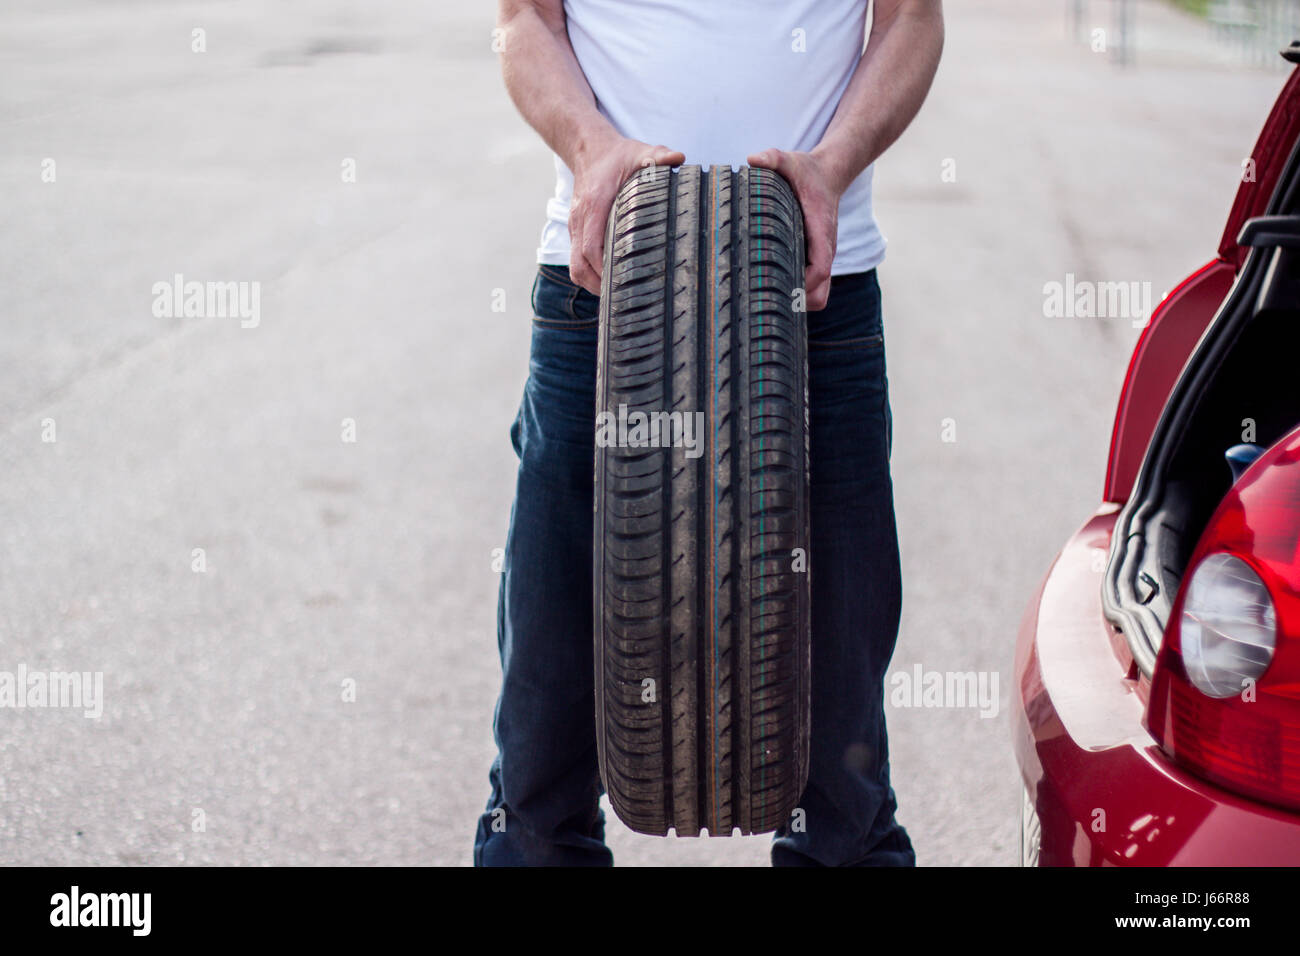 Car remained out of order on the road, the driver pulls the spare tire out of the trunk to be replaced - Stock Image